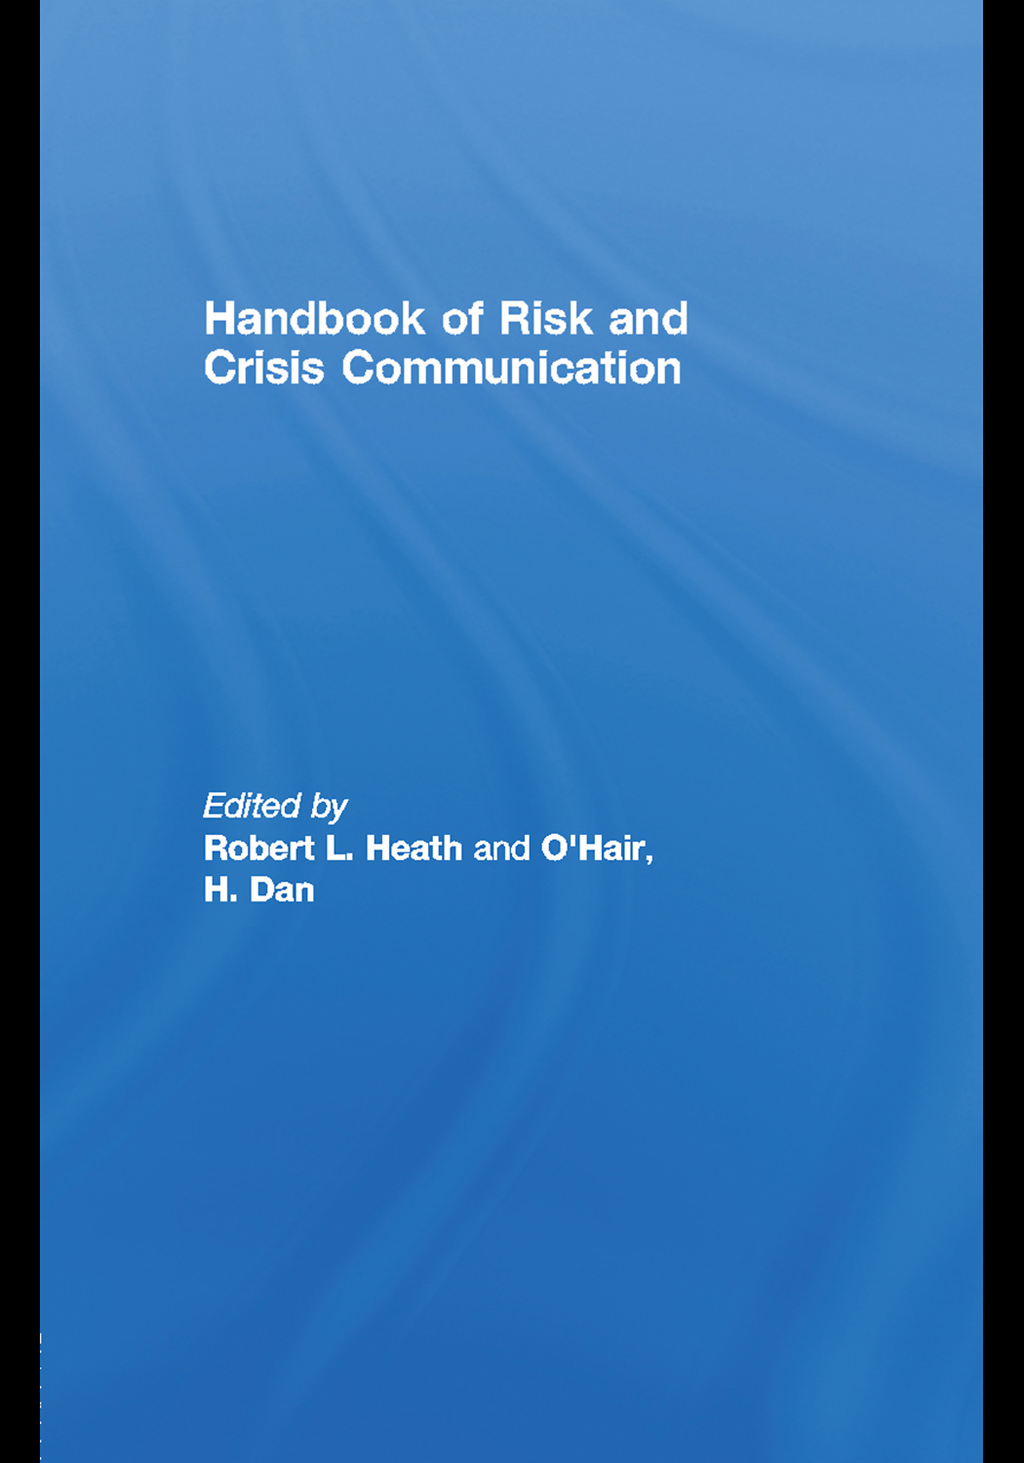 Robert L. Heath  H. Dan O'Hair - Handbook of Risk and Crisis Communication